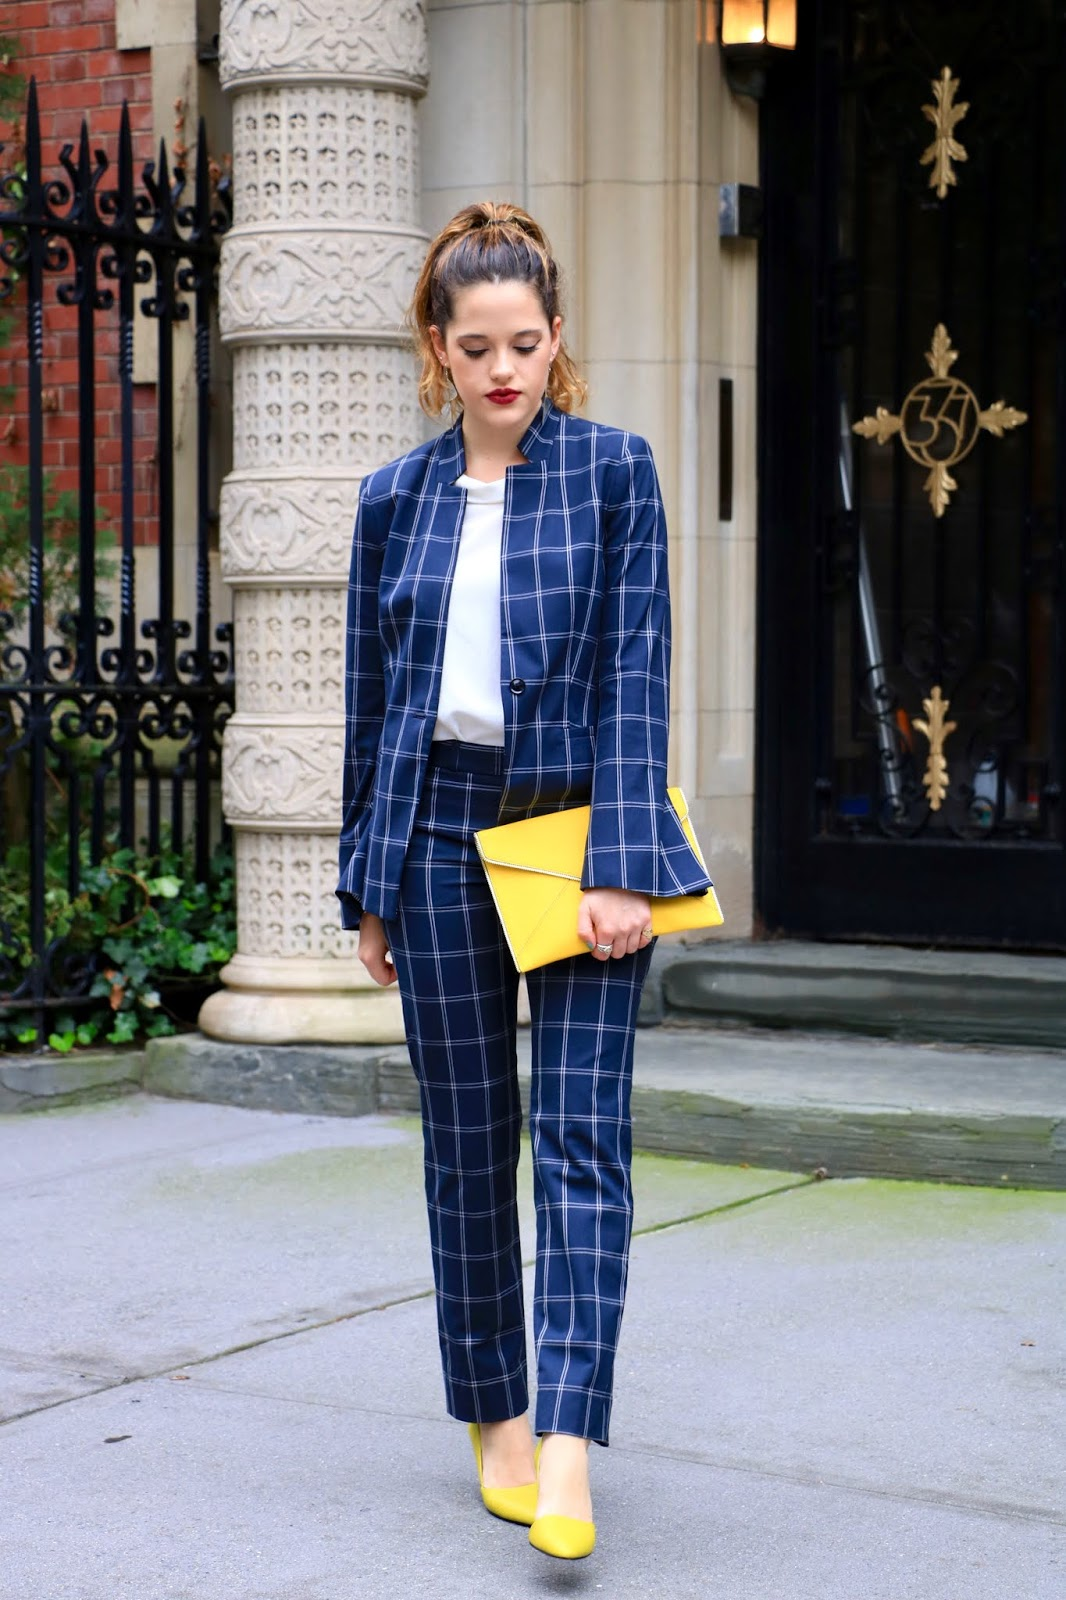 Nyc fashion blogger Kathleen Harper's suit outfit for women